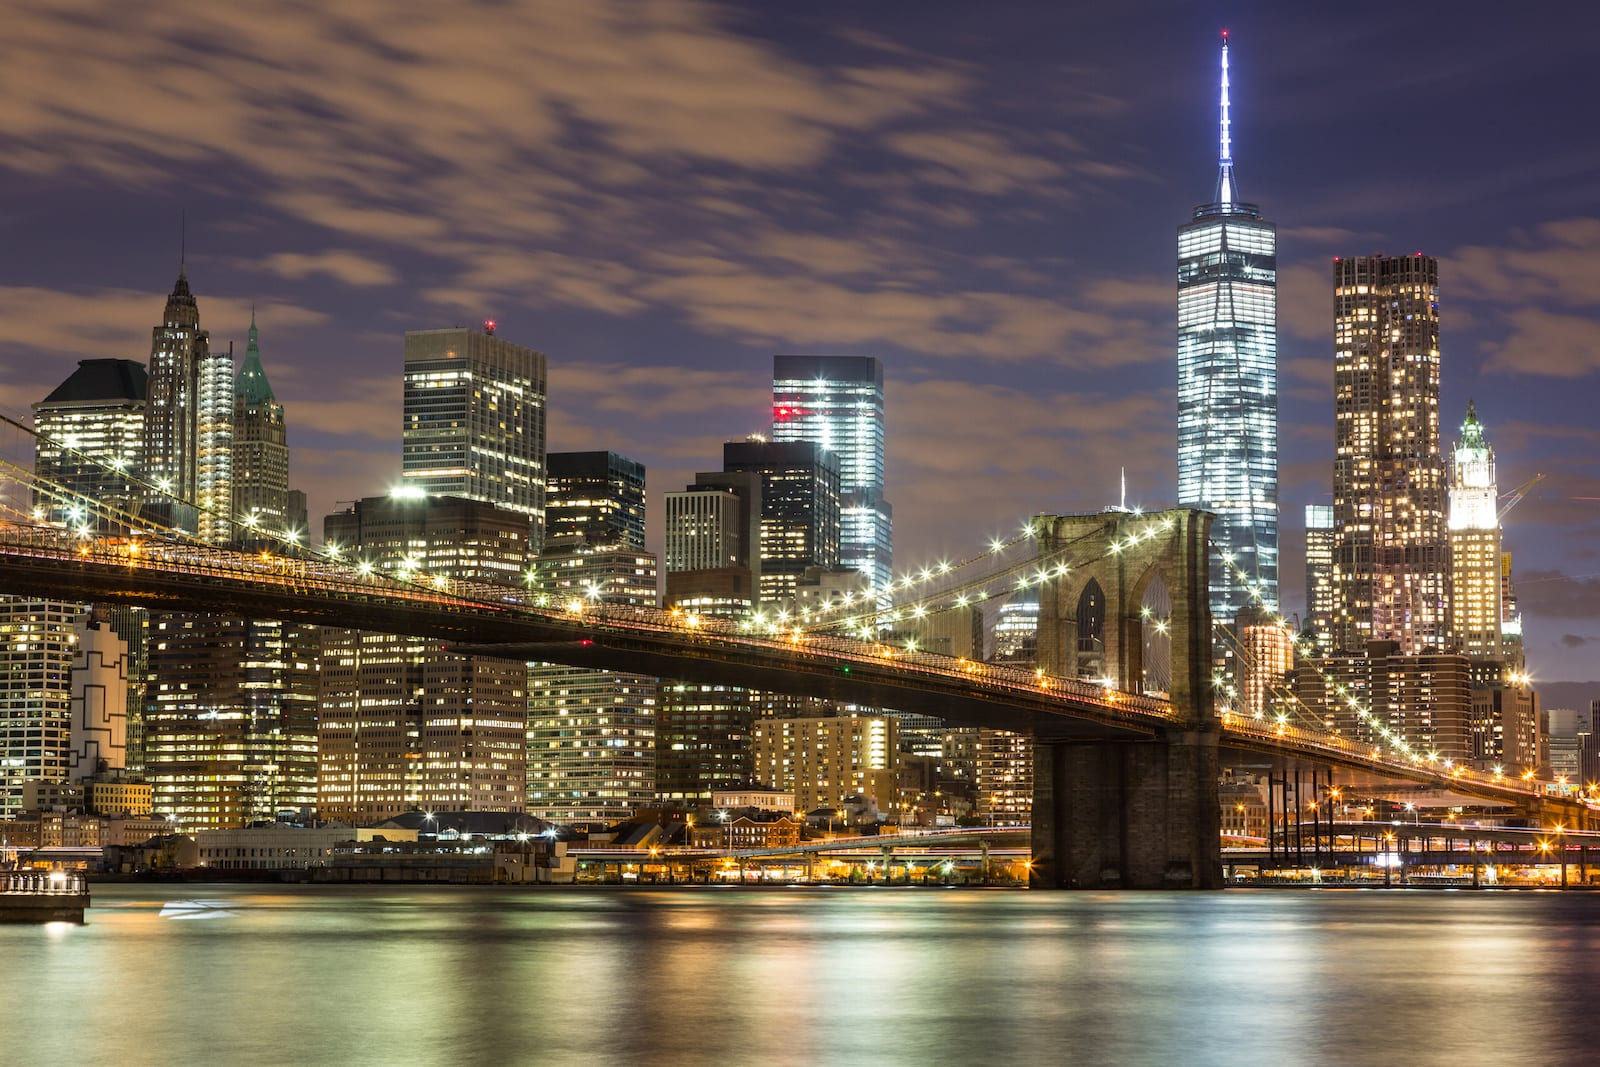 Brooklyn Bridge and Downtown Skyscrapers in New York at Night